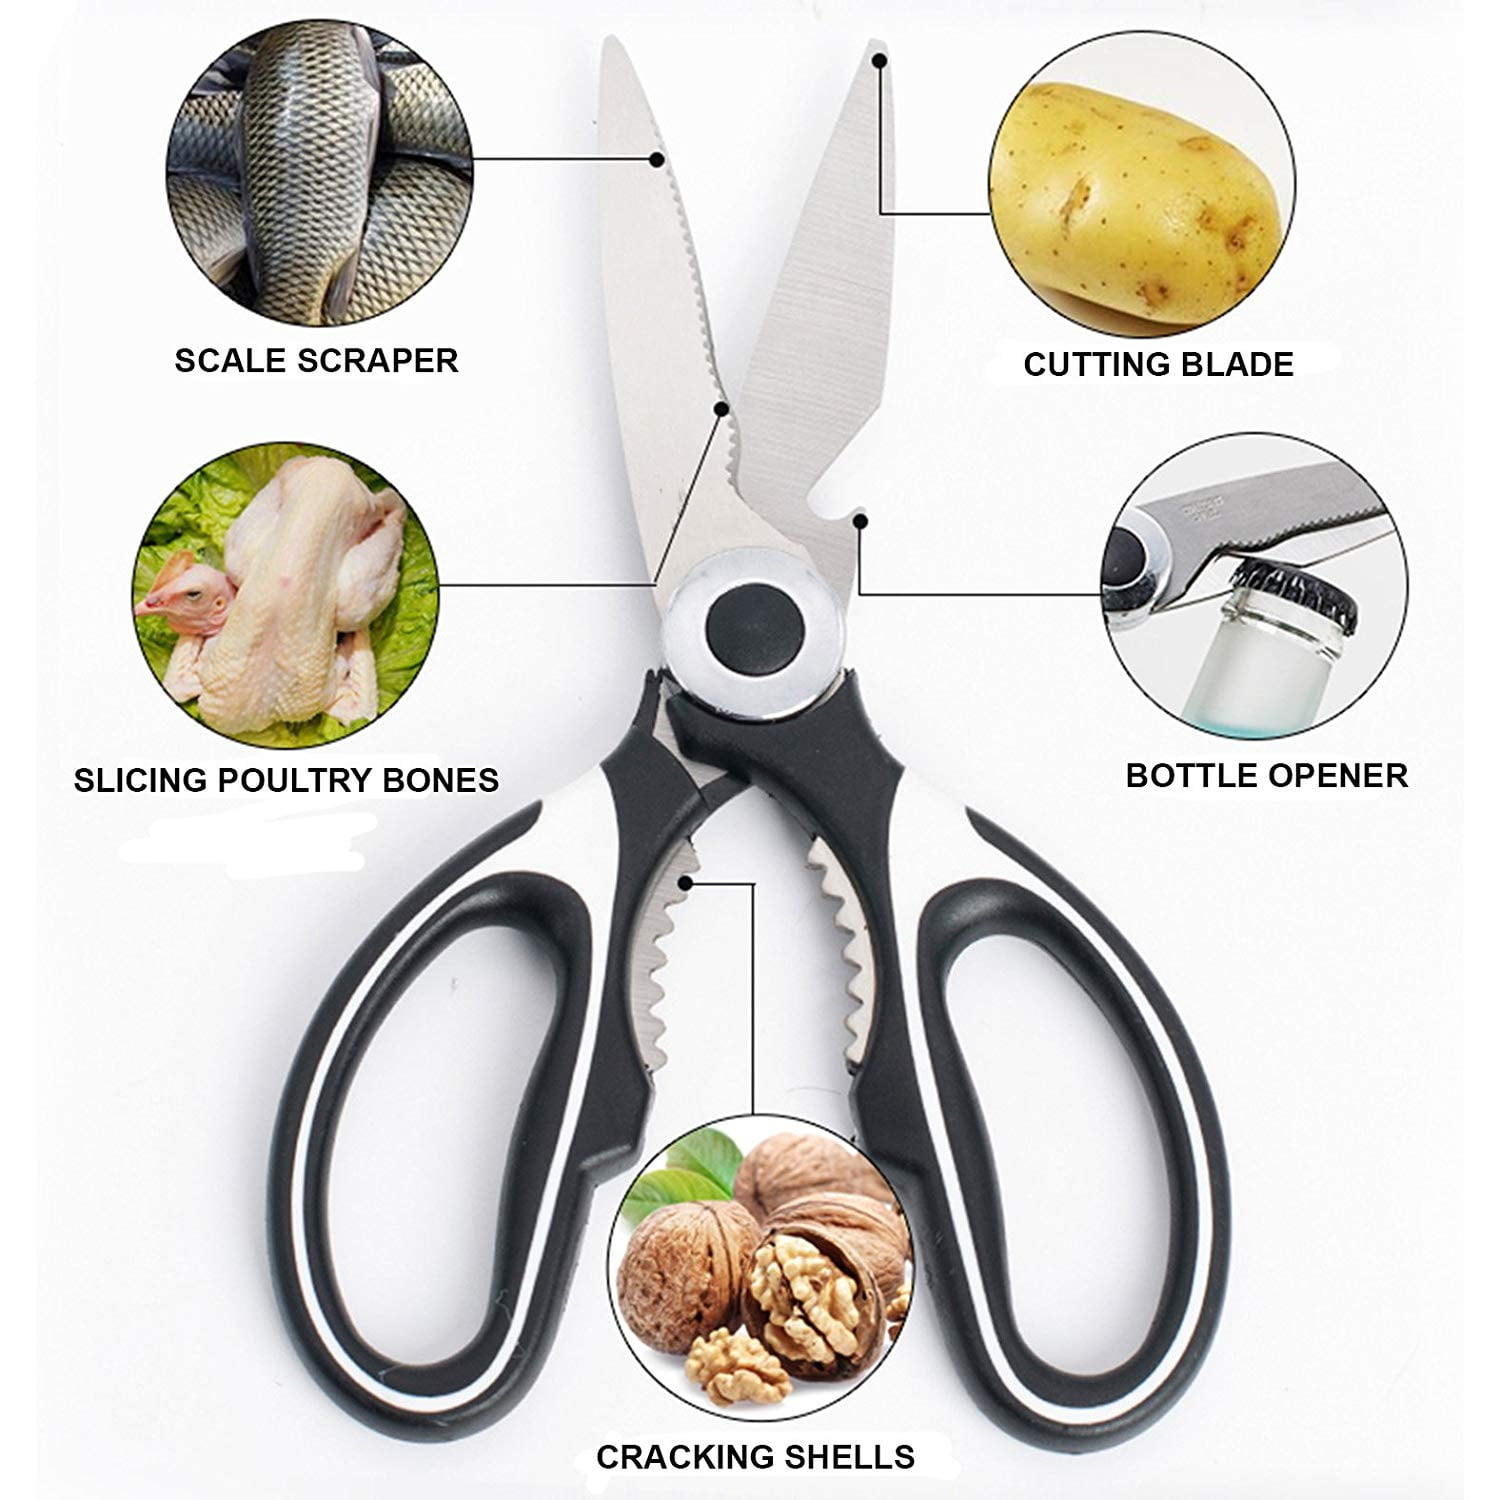 kitchen scissors black, ultra sharp multi-functional